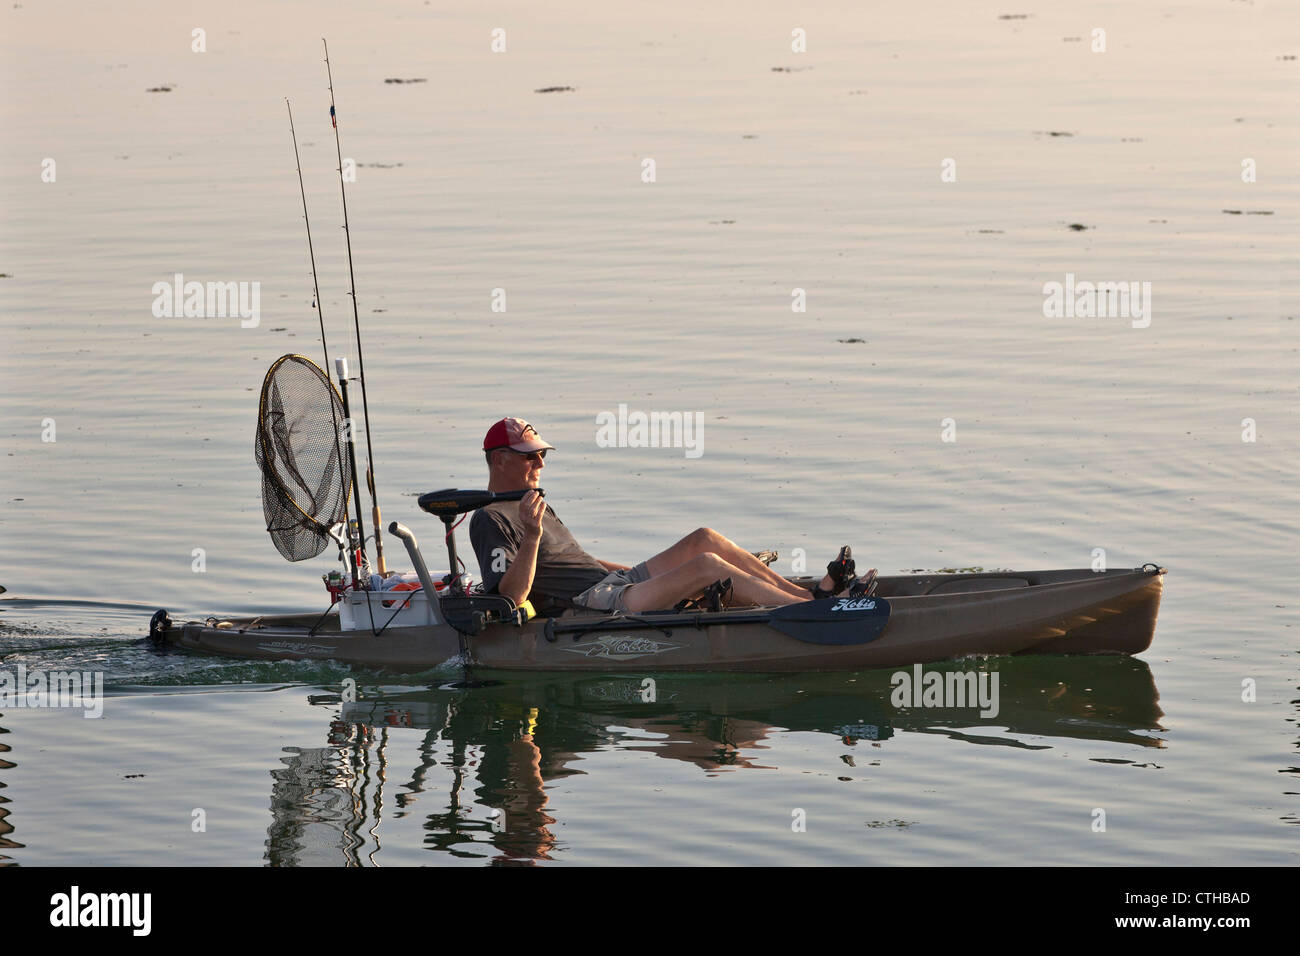 The Netherlands, Zierikzee, Fisherman in cycle-kayak with